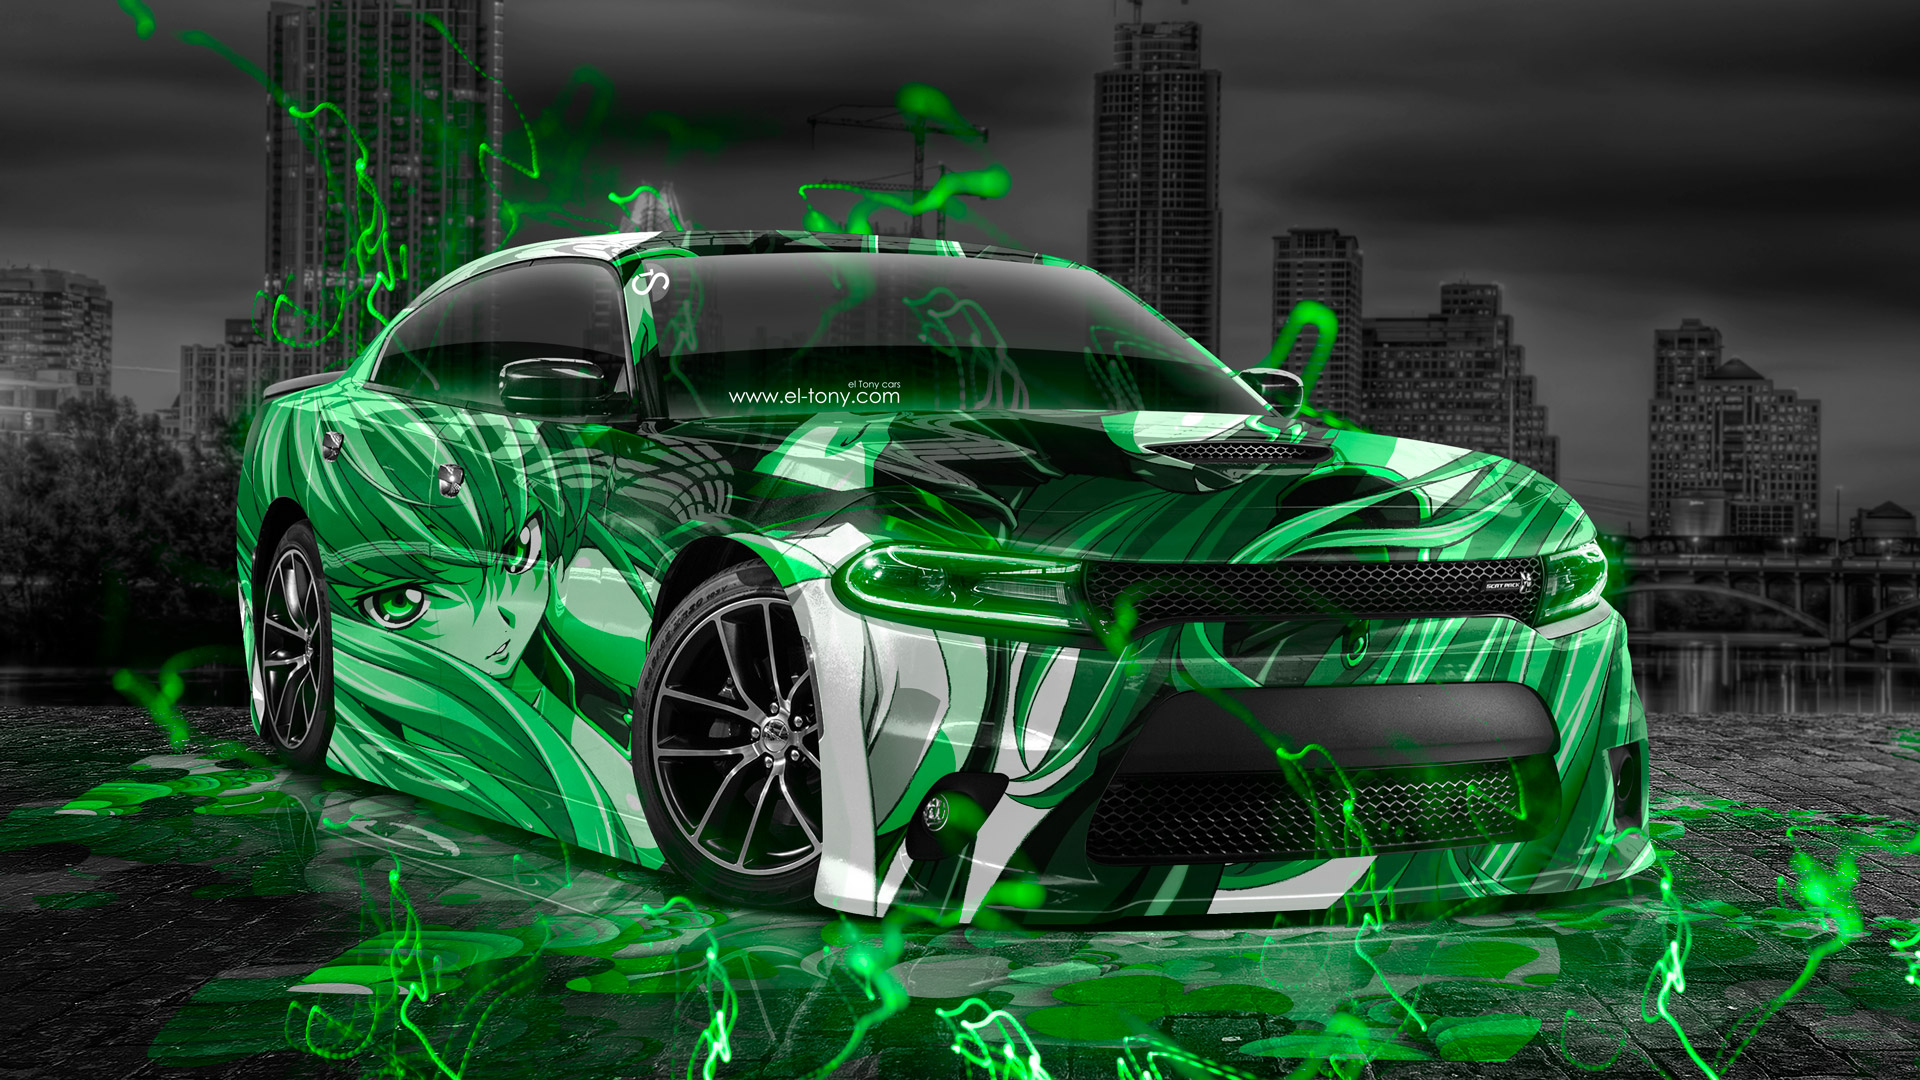 Green Spots Car With Girls Hd Wallpaper: Dodge Charger RT Muscle Anime Girl Aerography City Car